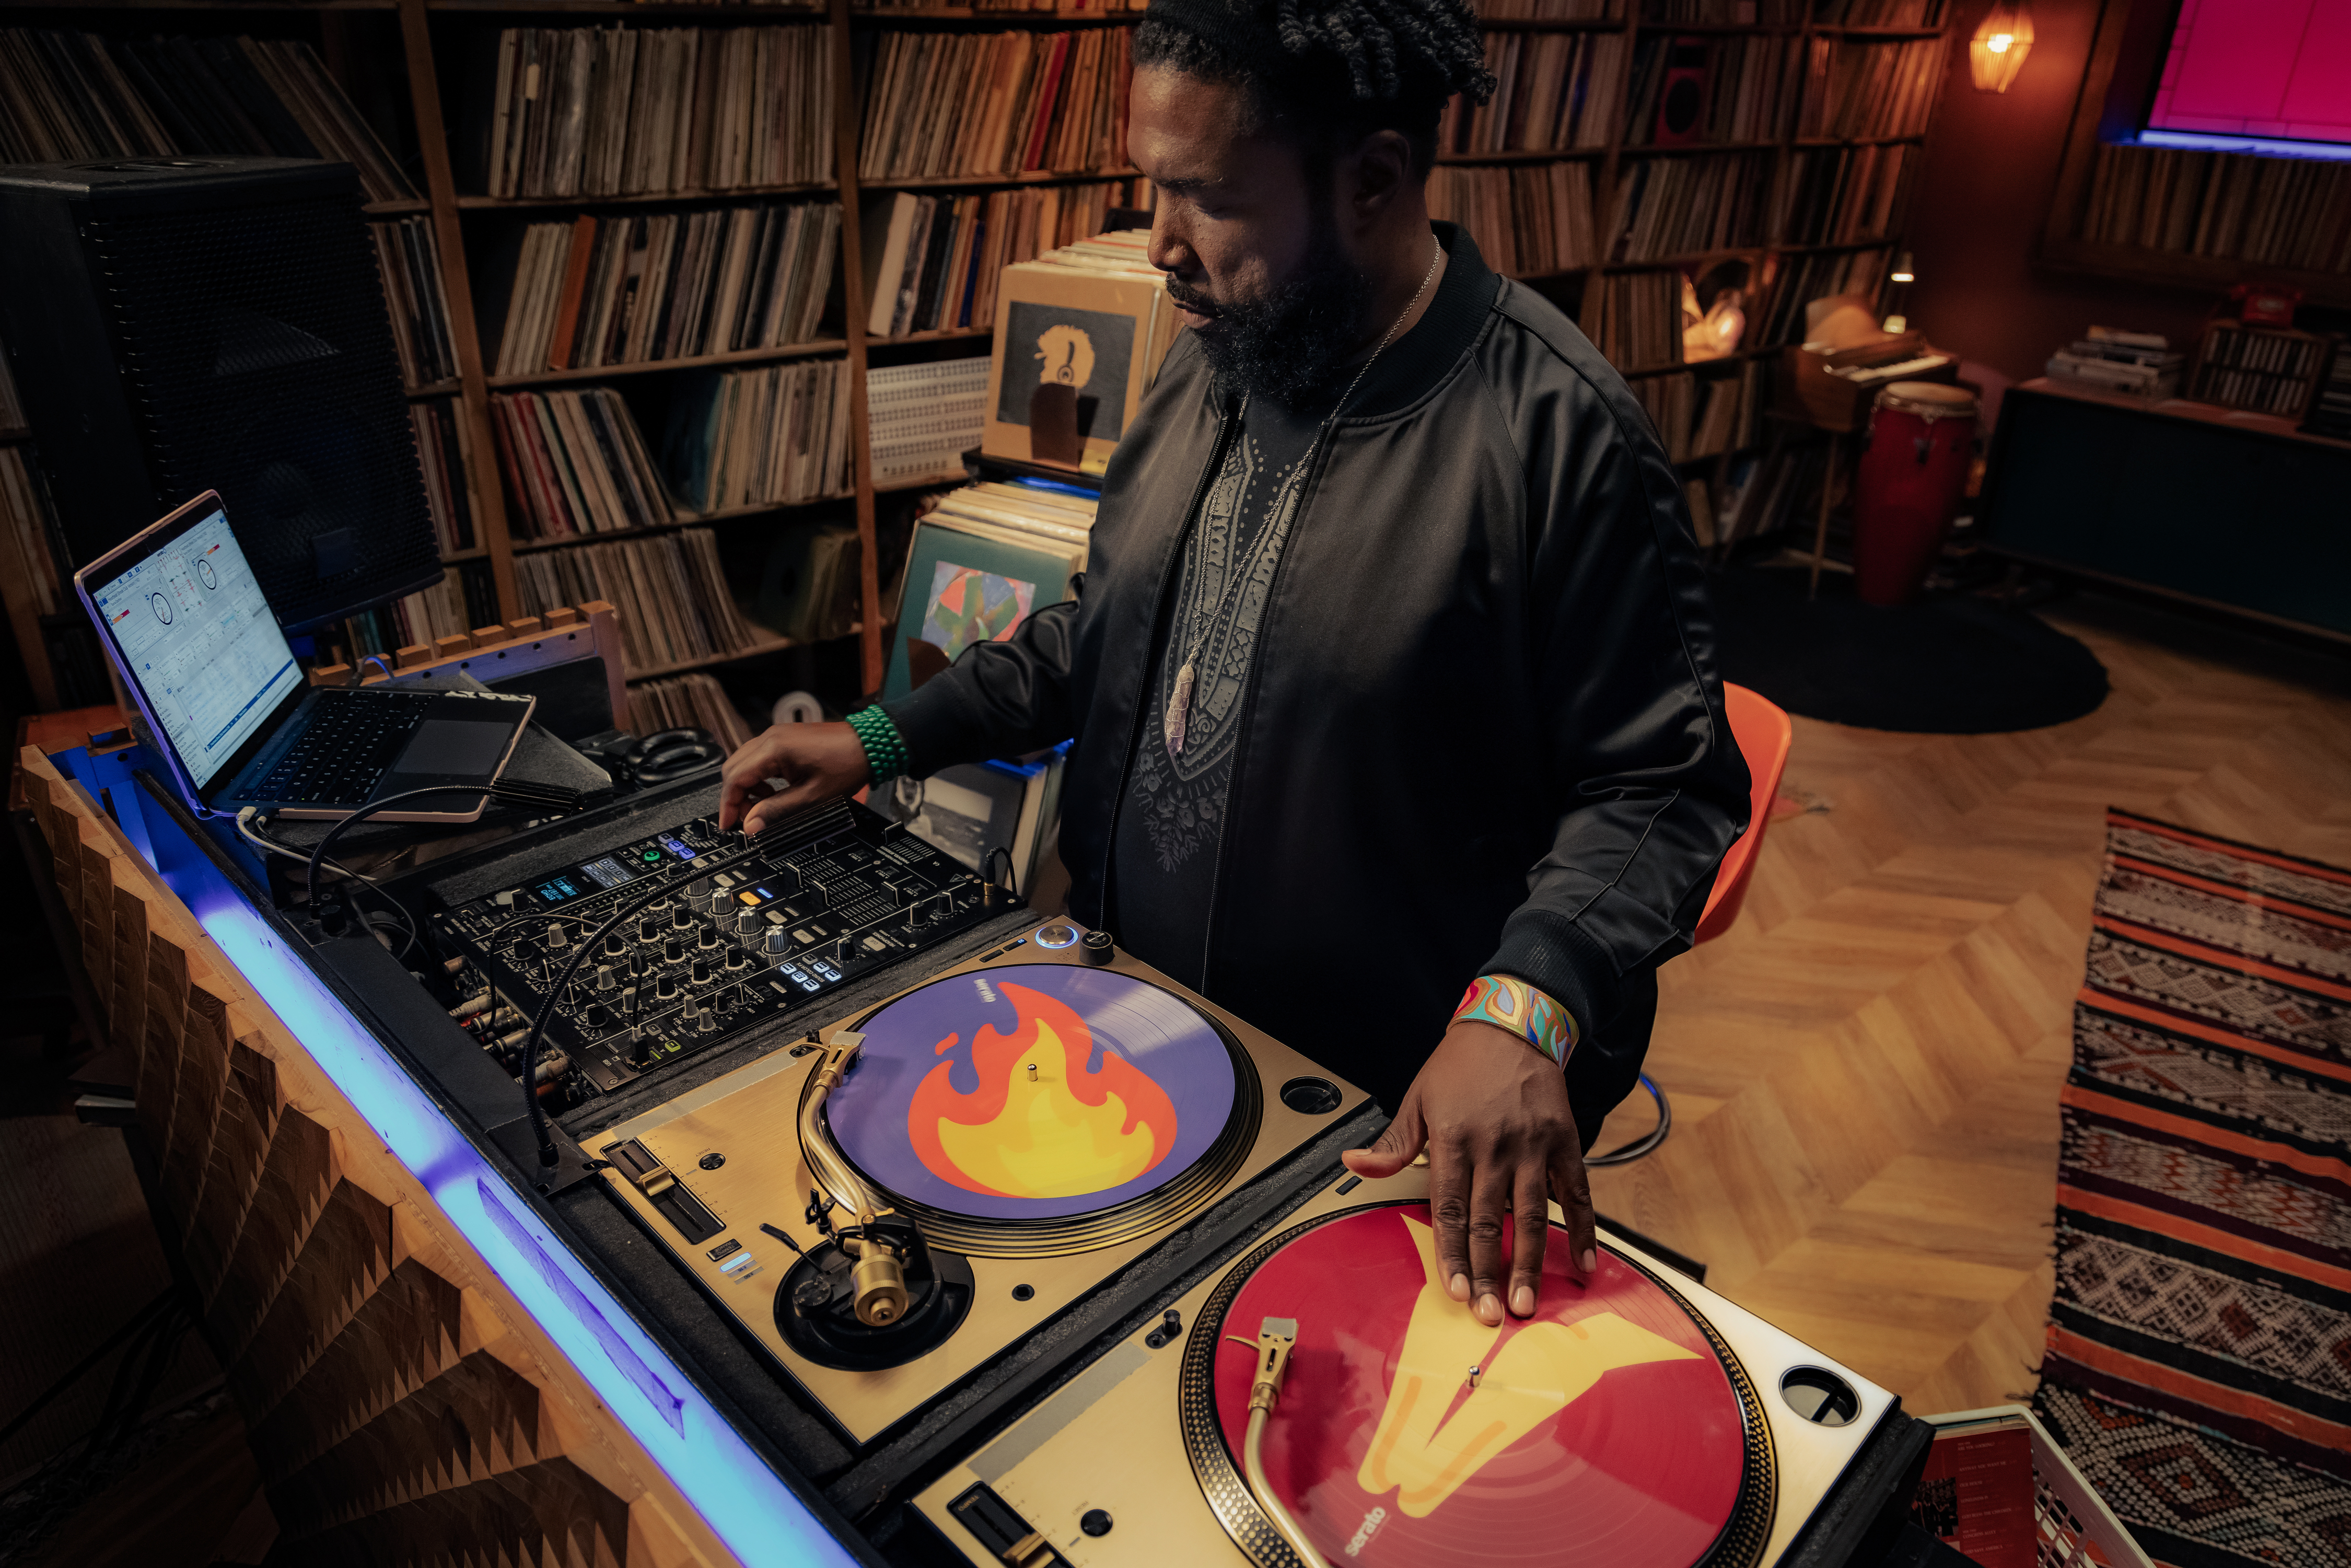 Questlove teaches MasterClass in DJing and music curation